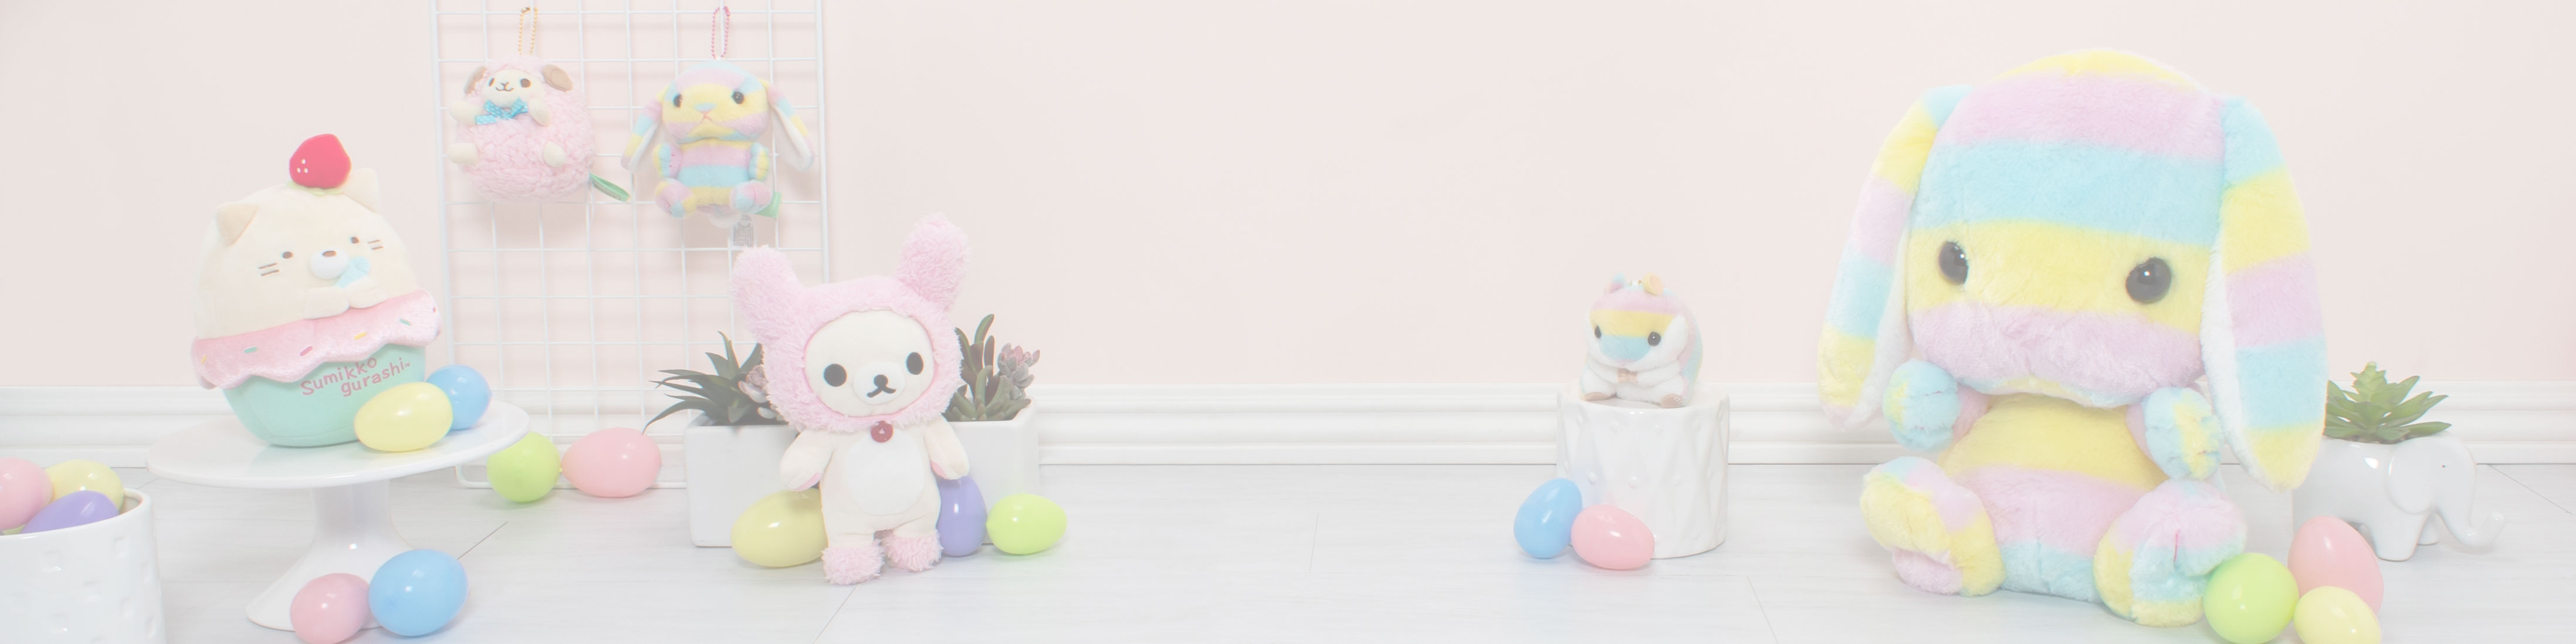 Easter Promo showcasing Amuse rainbow plush and other easter related plush surround by easter eggs.